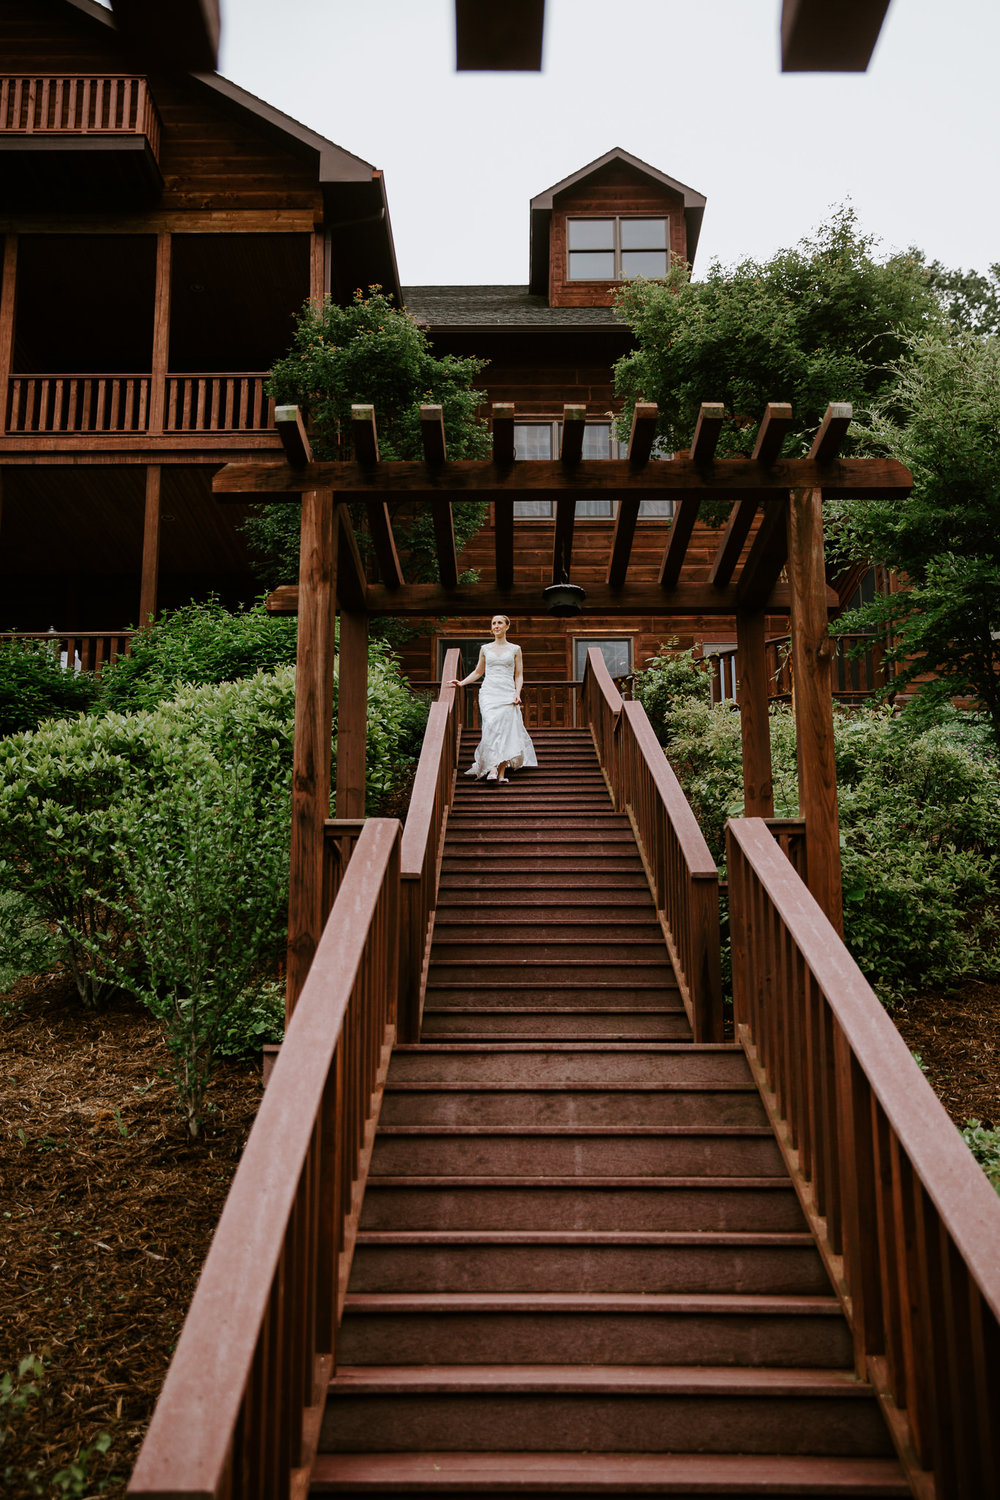 House Mountain Inn - Weddings - Lexington - Virginia - Best Wedding Photographer - Pat Cori Photography-20.jpg